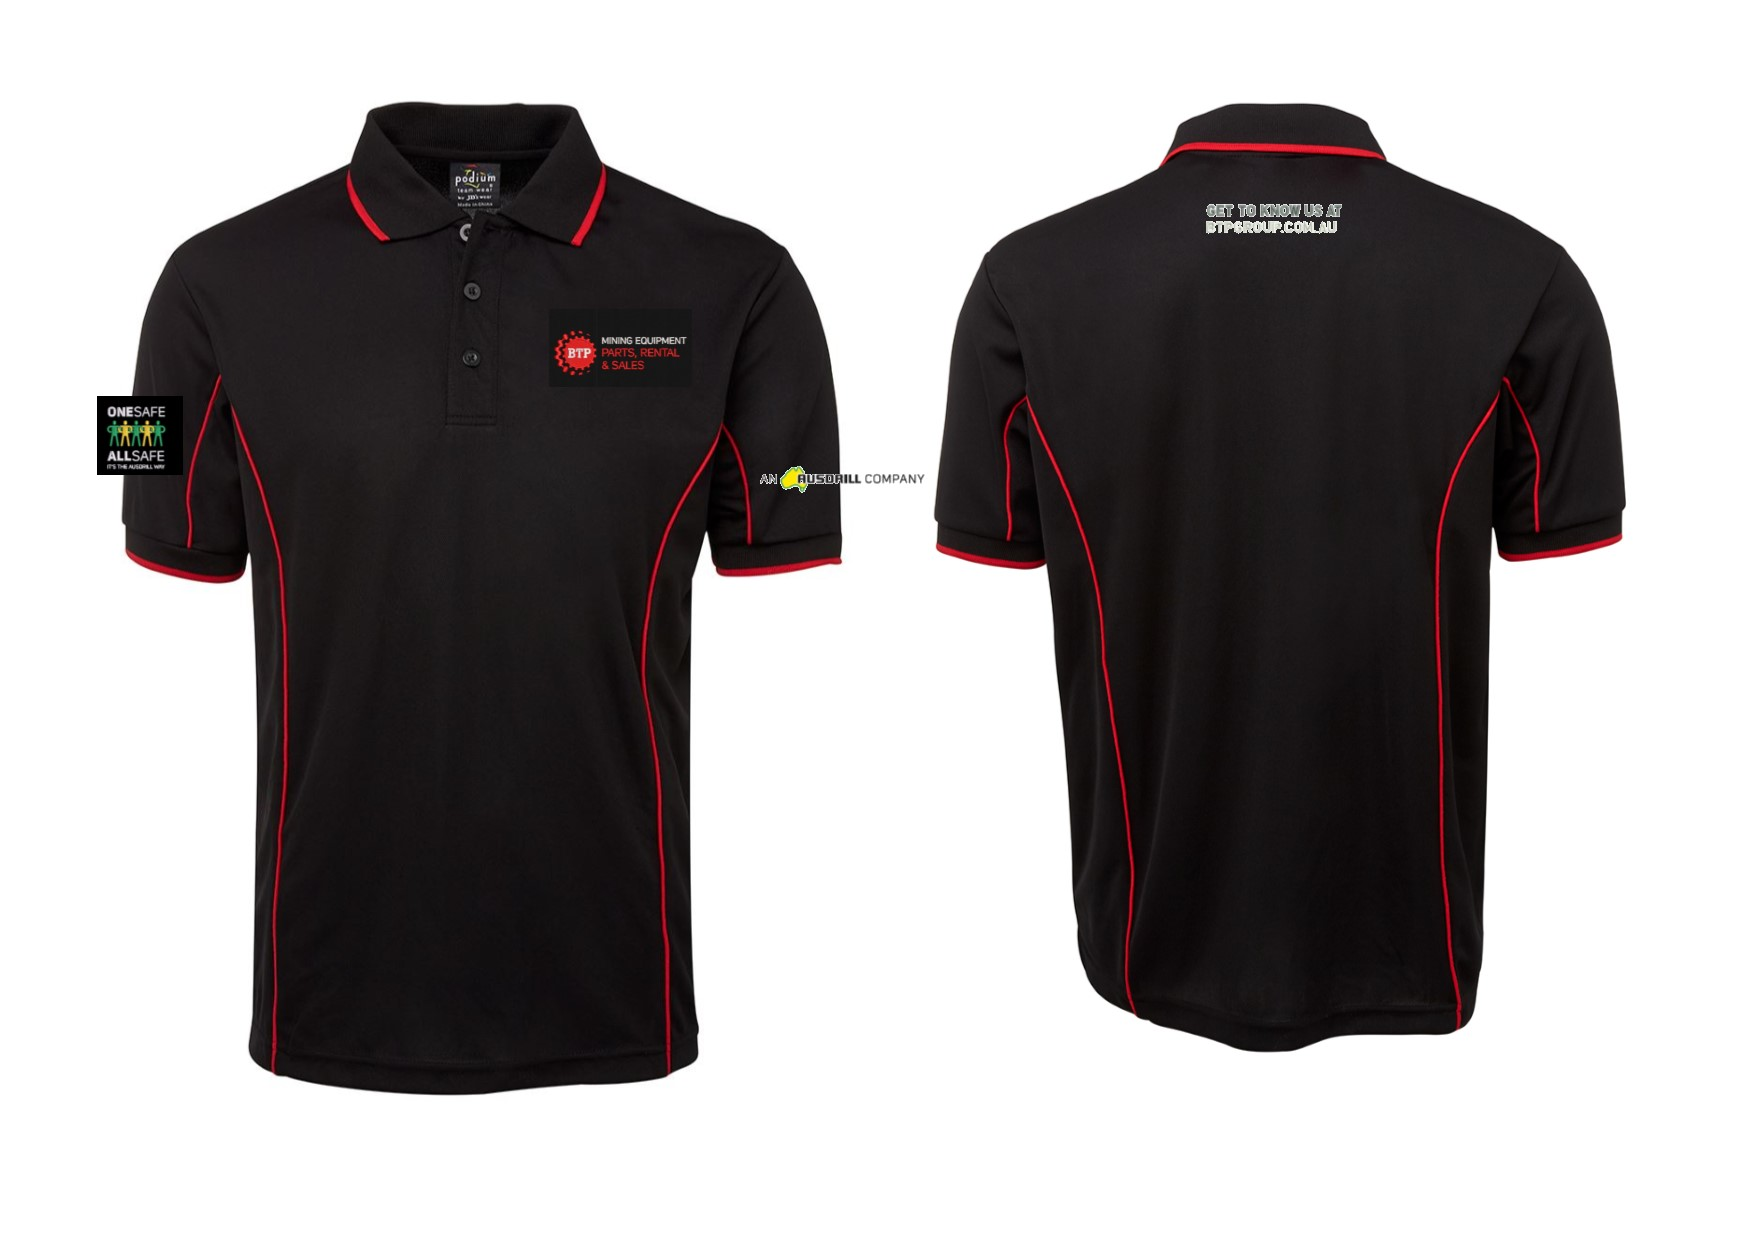 POLO PODIUM BLACK RED 2XL BTP LOGOS X 4